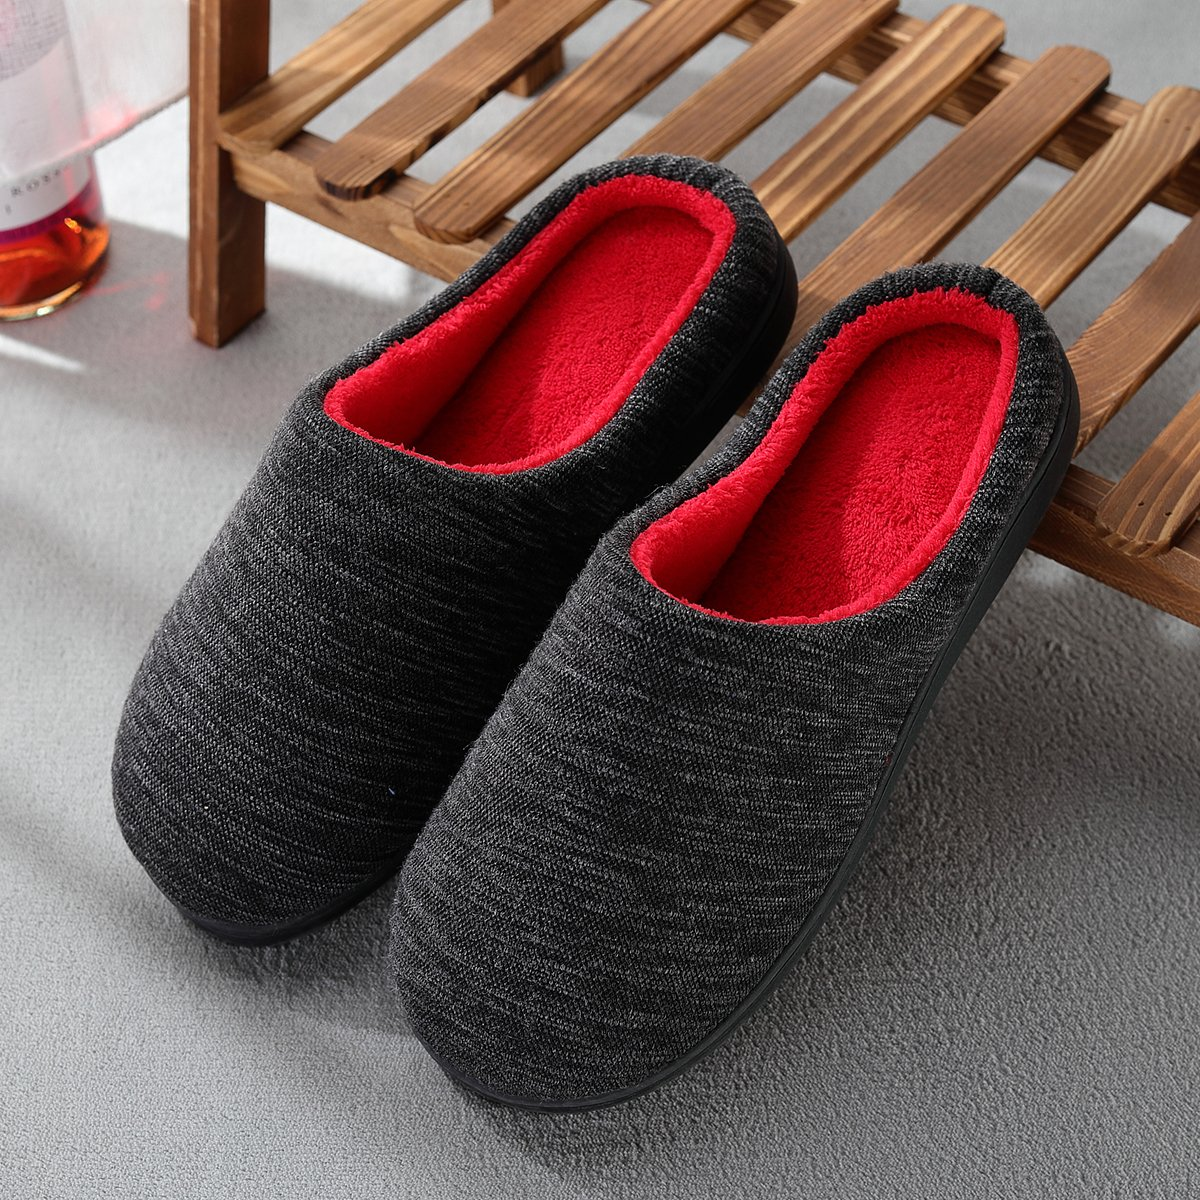 Cozy Spa House Indoor Slippers for Men Warm Lining Clog Furry Slippers by Harrms (Image #3)